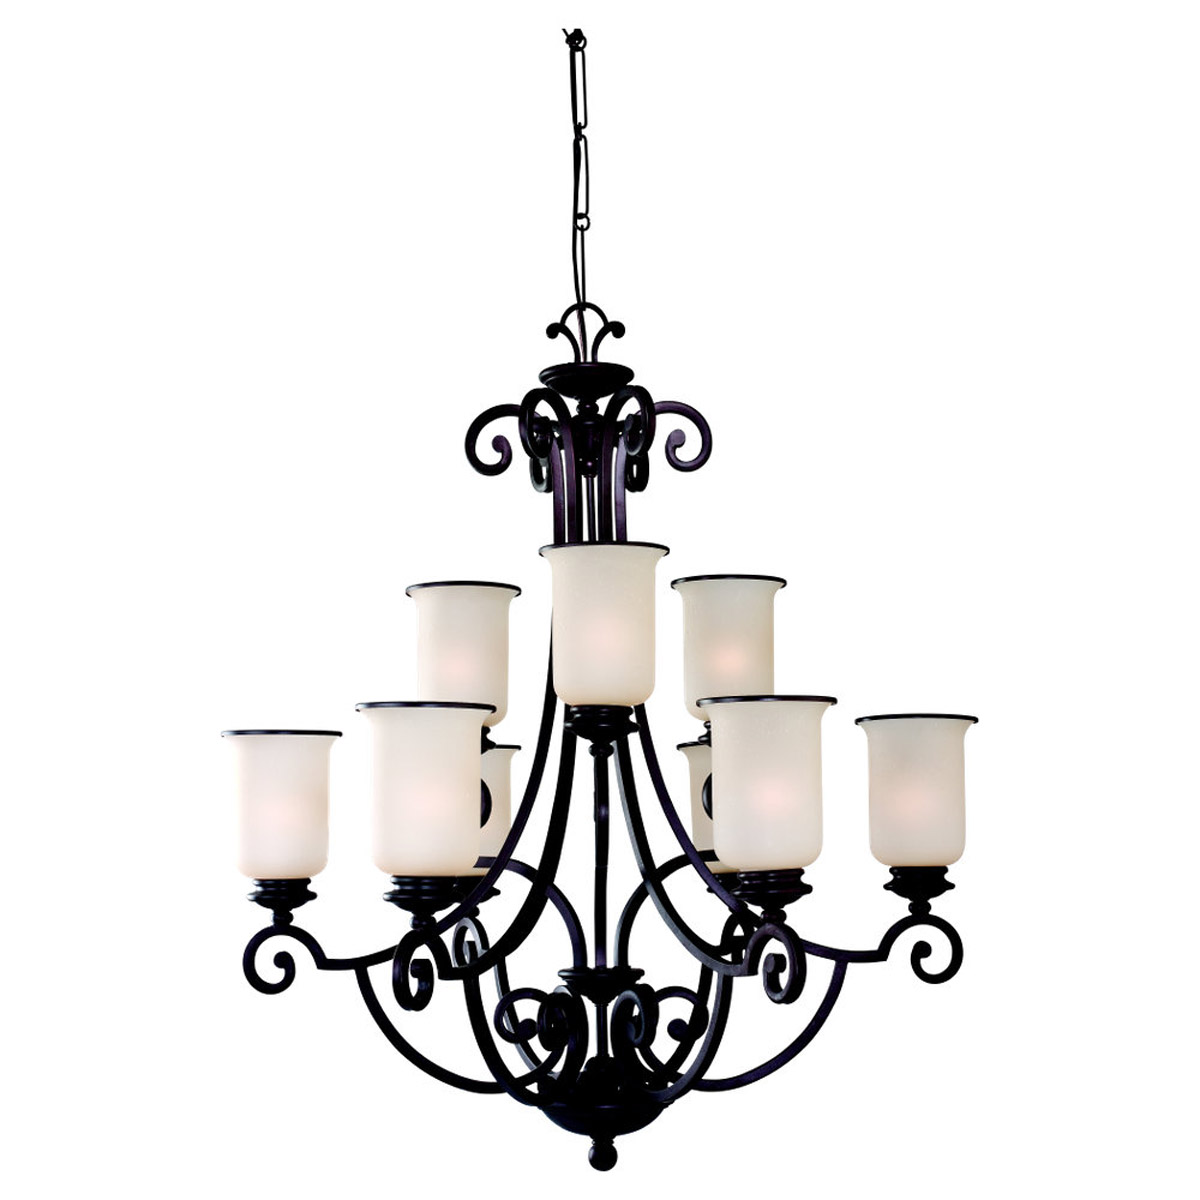 Sea Gull Lighting Acadia 9 Light Chandelier in Misted Bronze 31147BLE-814 photo